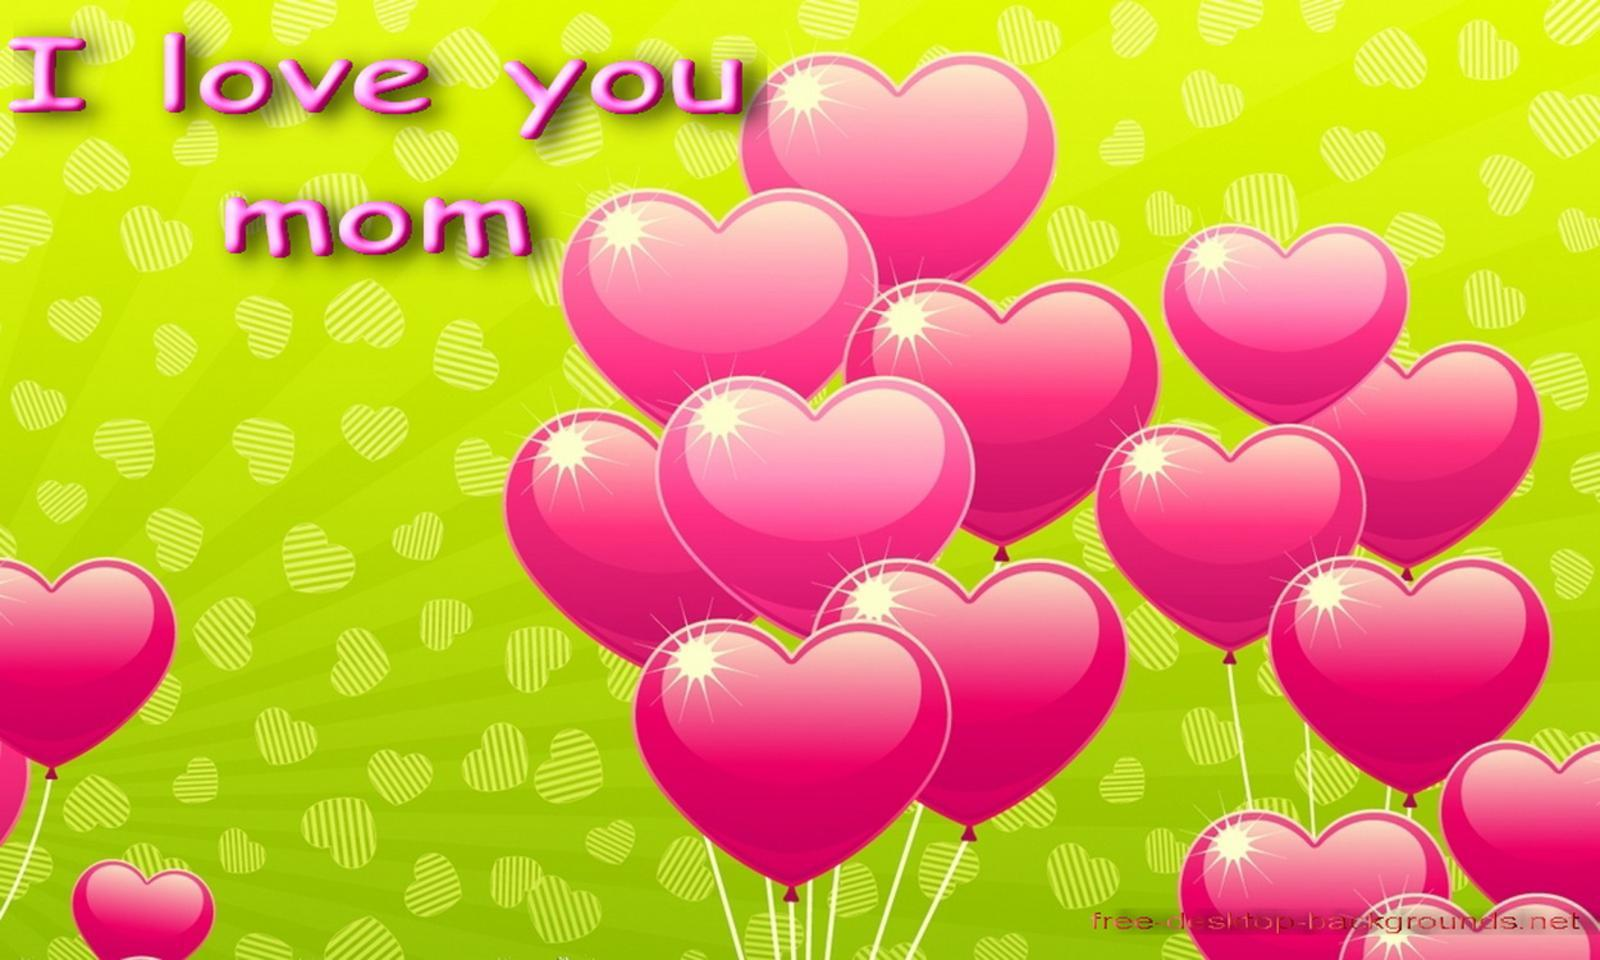 Iphone Happy New Year Wallpaper I Love You Mom Desktop Wallpapers Desktop Background